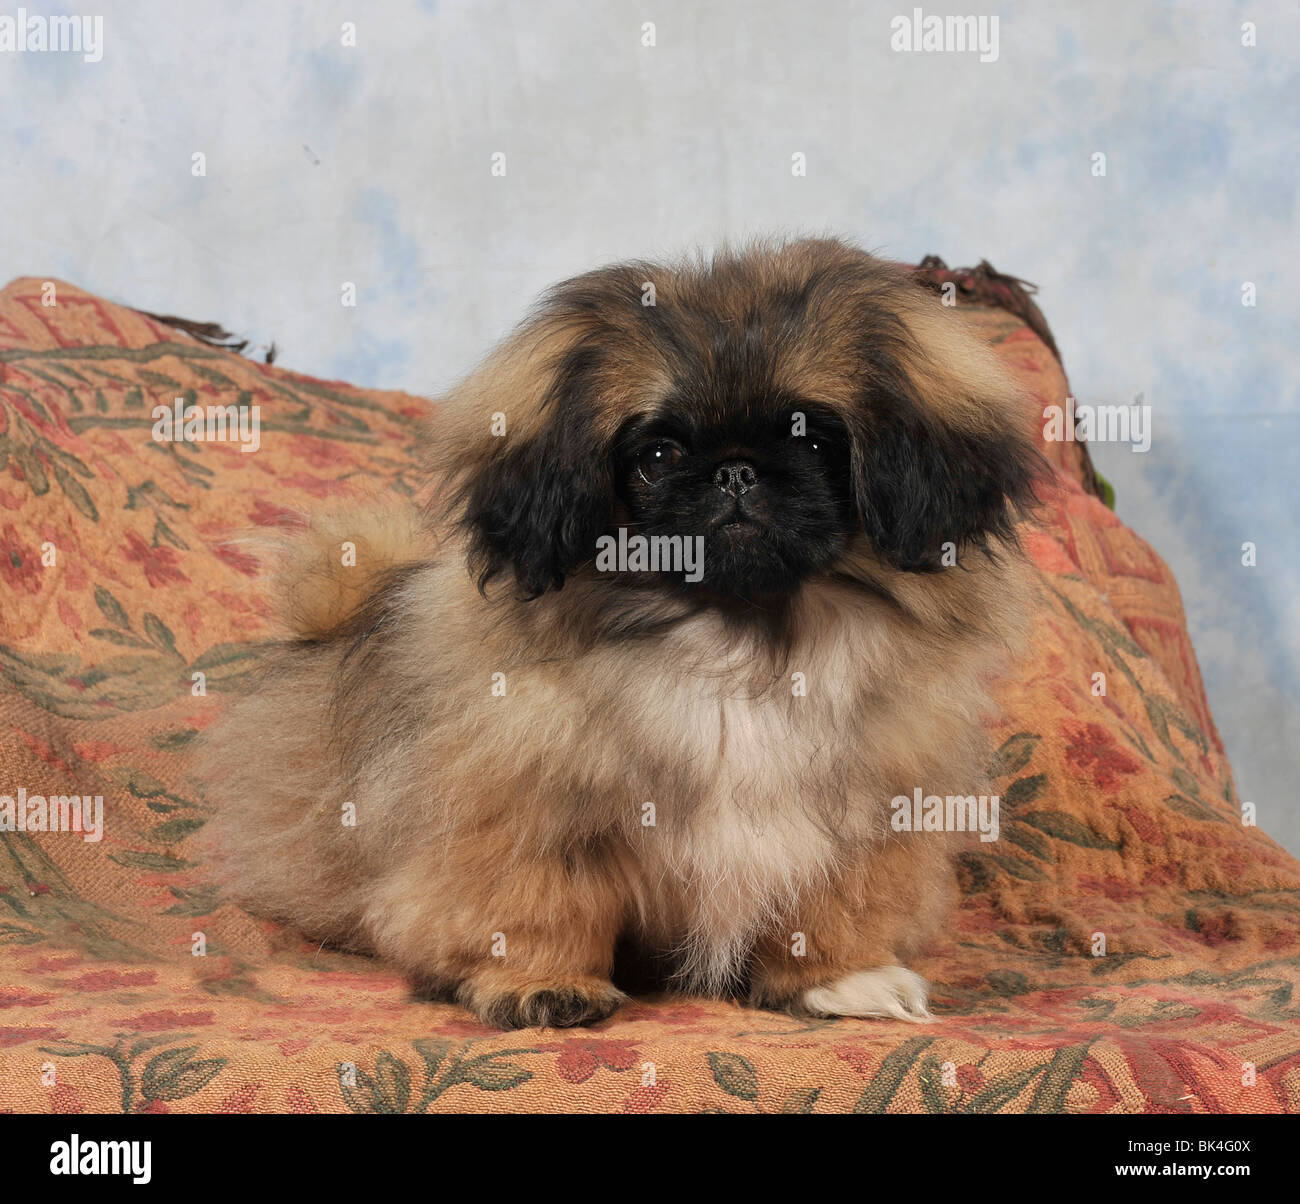 Pekinese Stock Photos & Pekinese Stock Images - Alamy